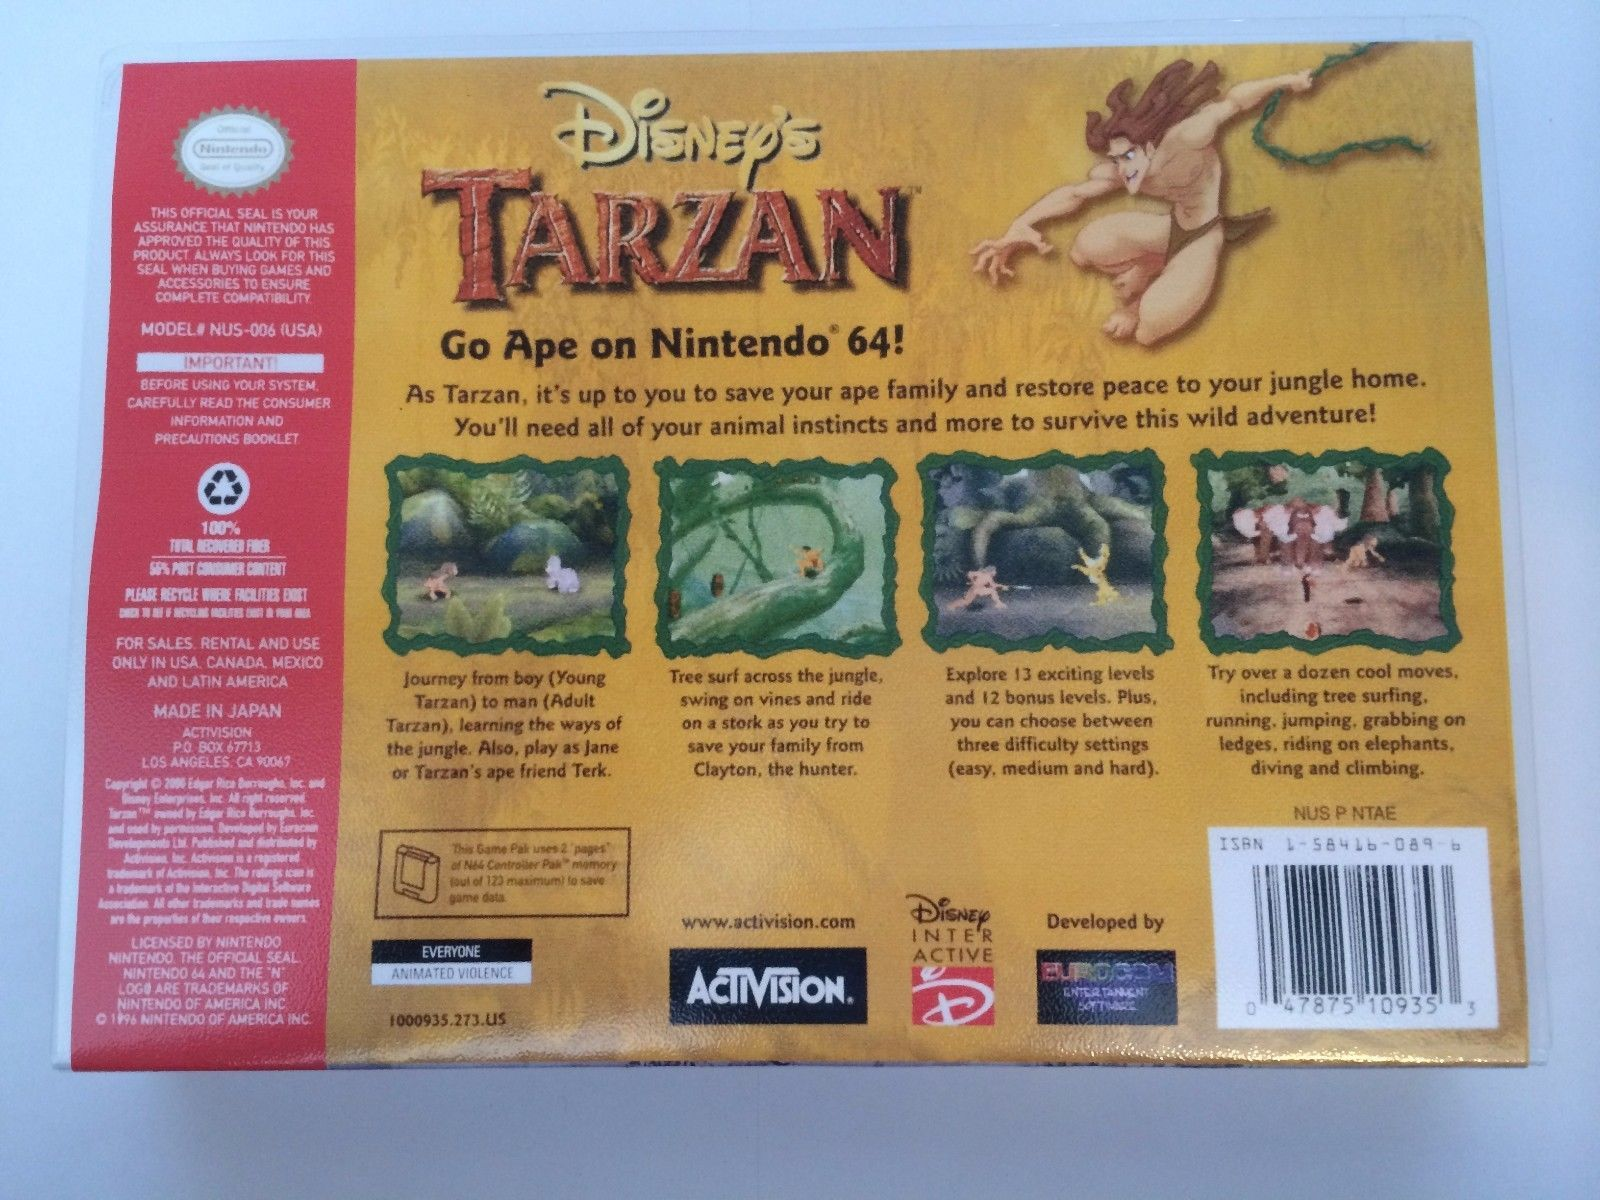 Disney's Tarzan - Nintendo 64 - Replacement Case - No Game